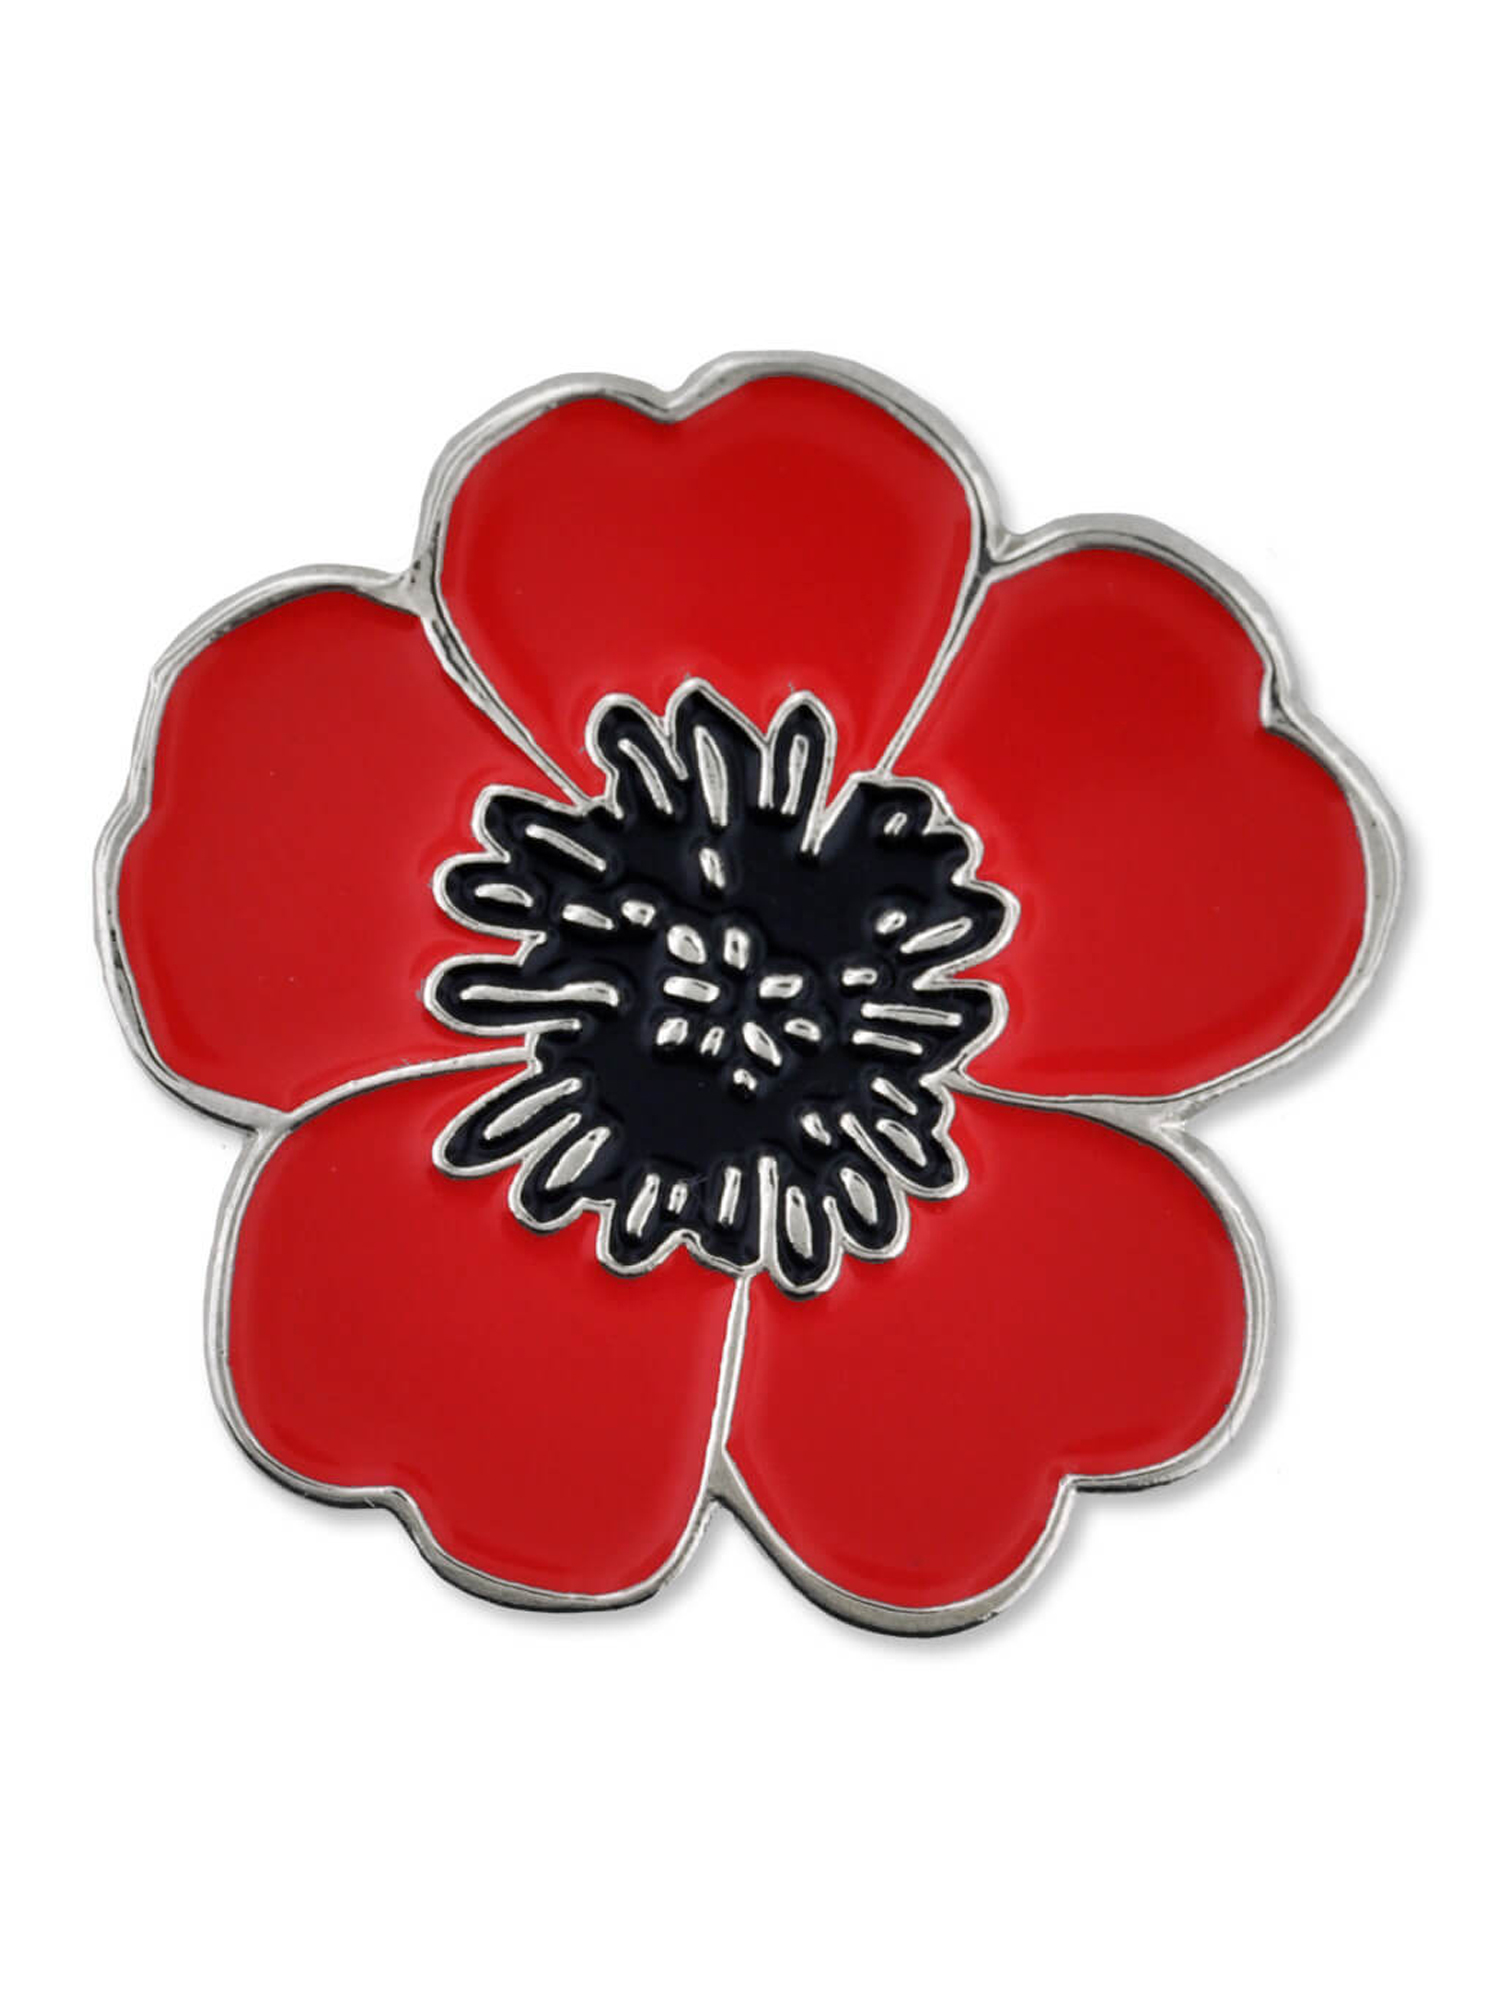 Pinmarts Red Poppy Flower Remembrance Memorial Day Lapel Pin W